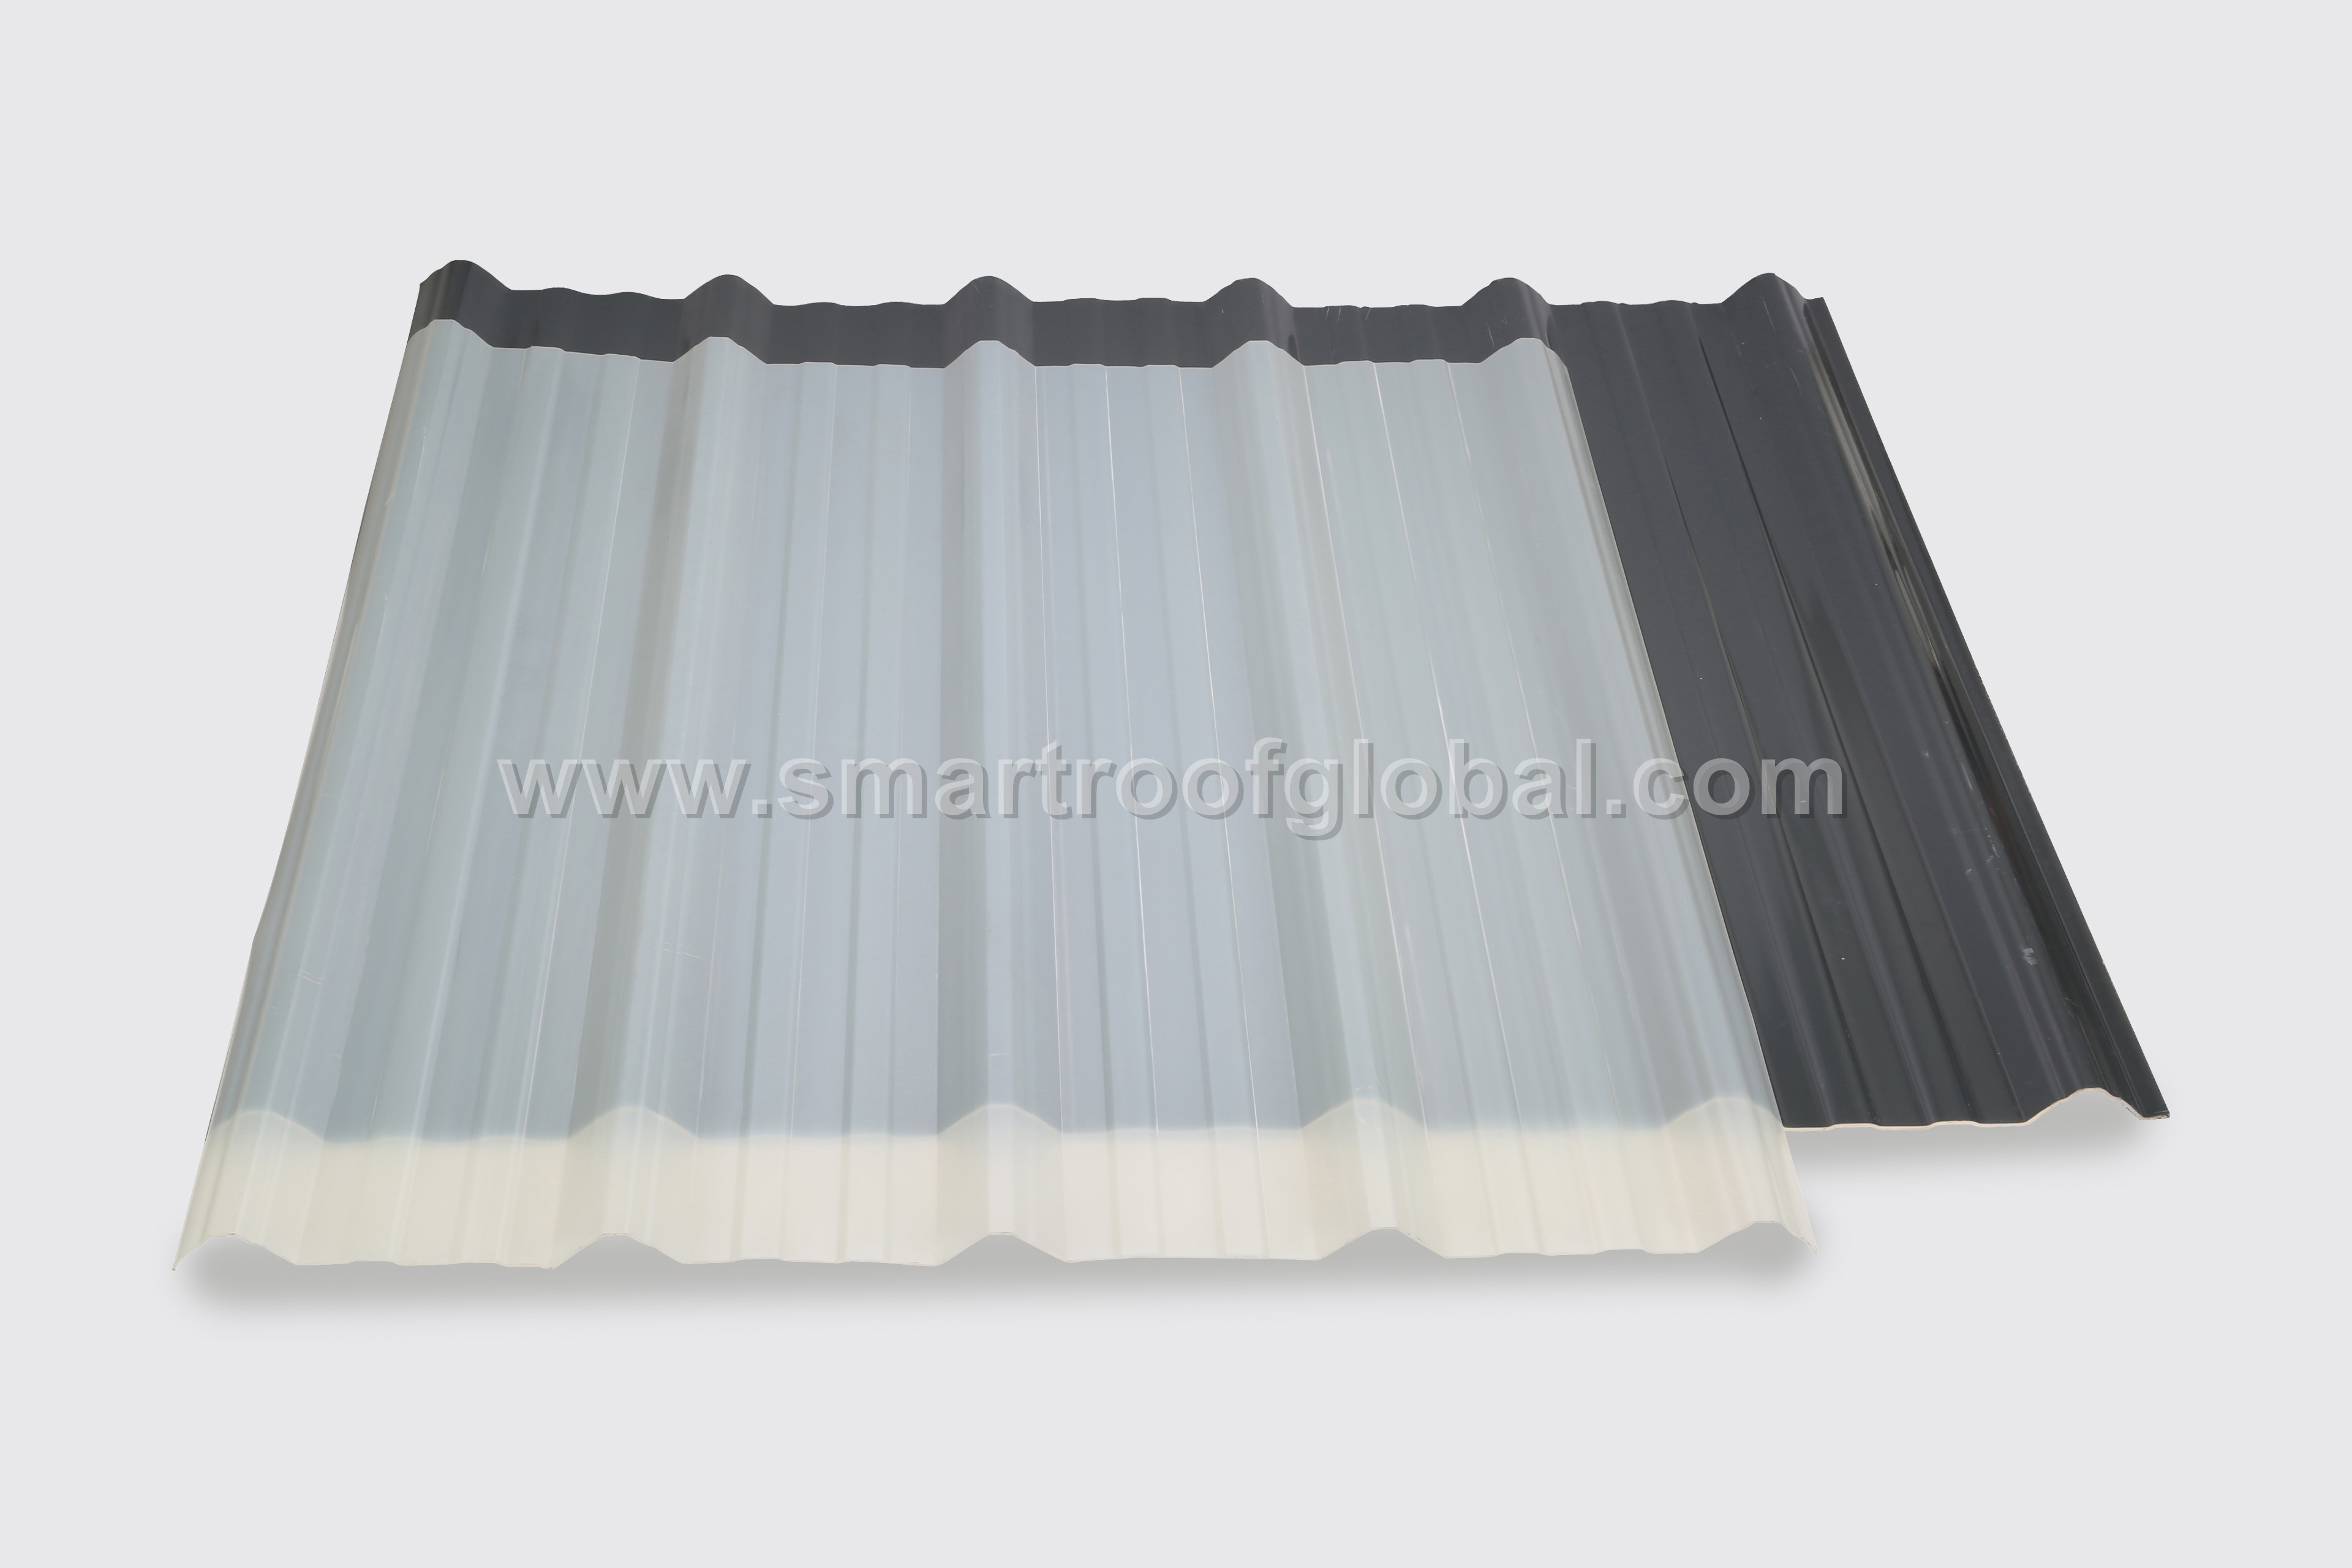 Corrugated Pvc Roofing Featured Image